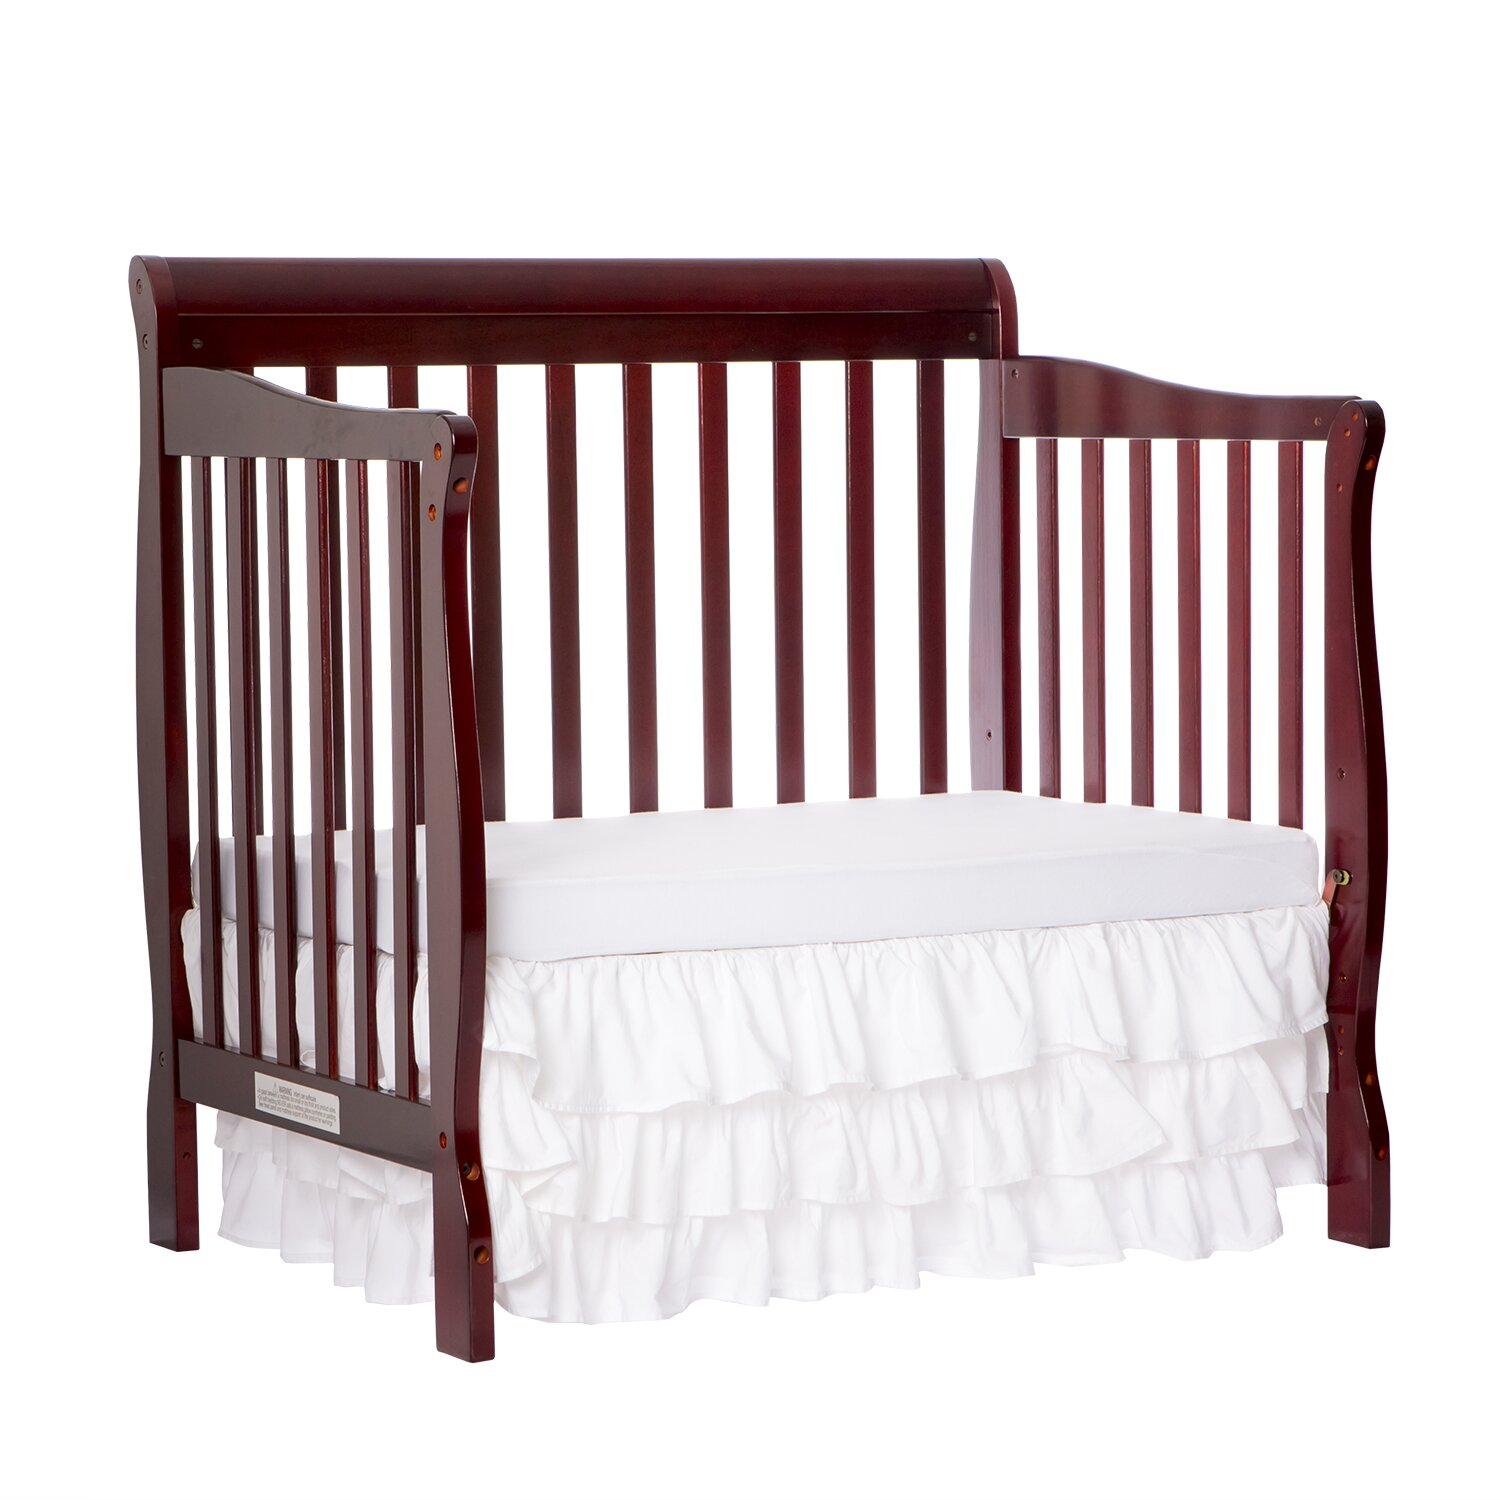 Dream On Me Aden 4-in-1 Mini Convertible Crib & Reviews